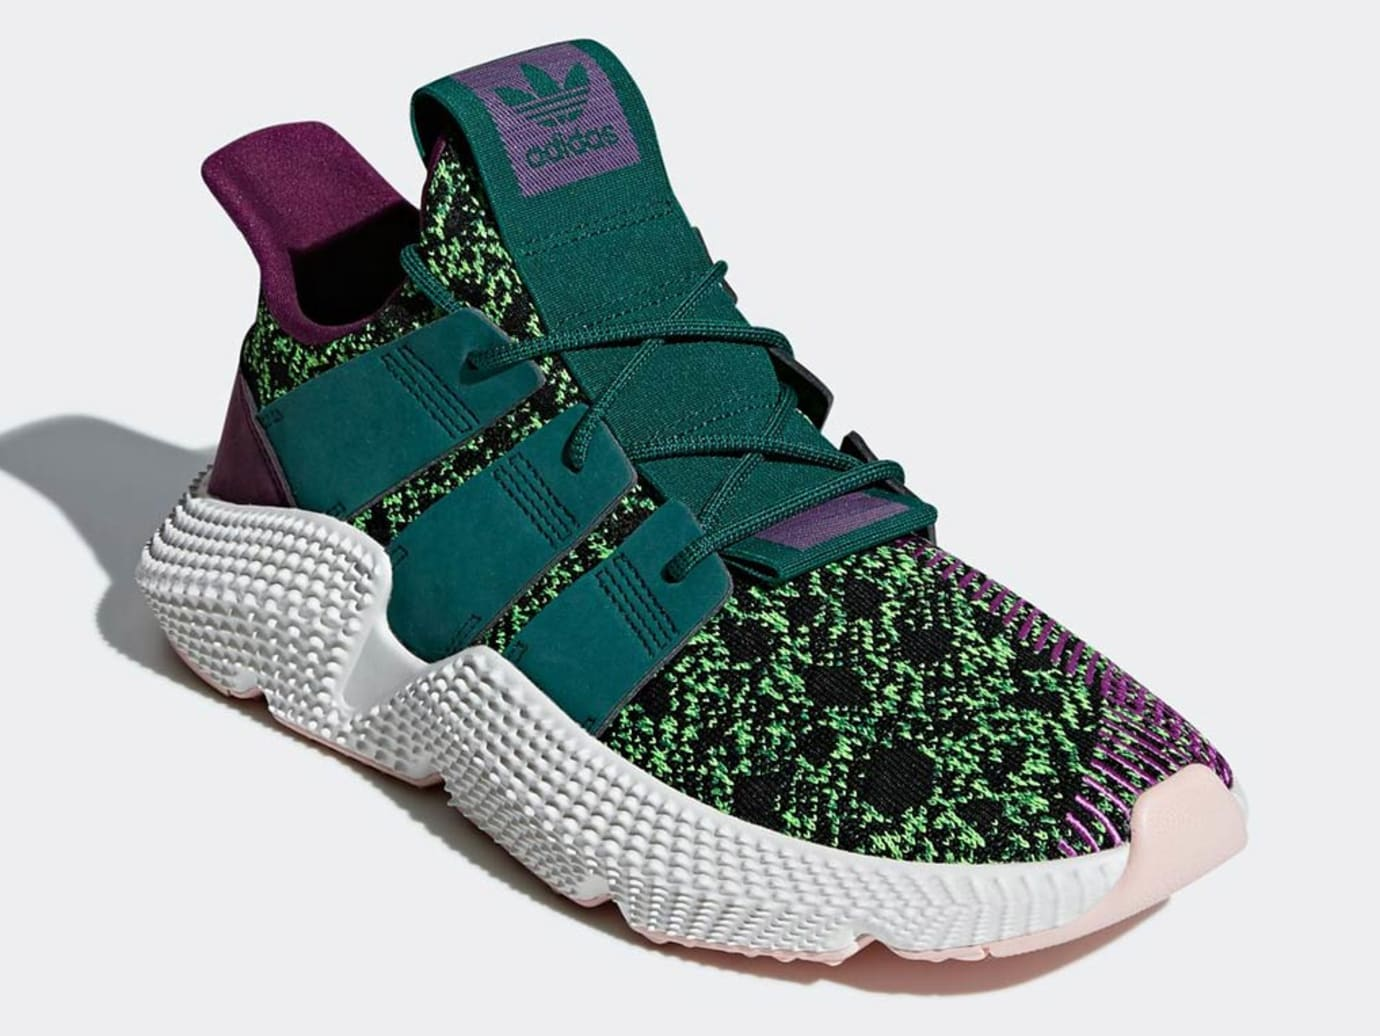 5478996fa1c Dragon Ball Z x Adidas Prophere Cell Release Date D97053 | Sole ...